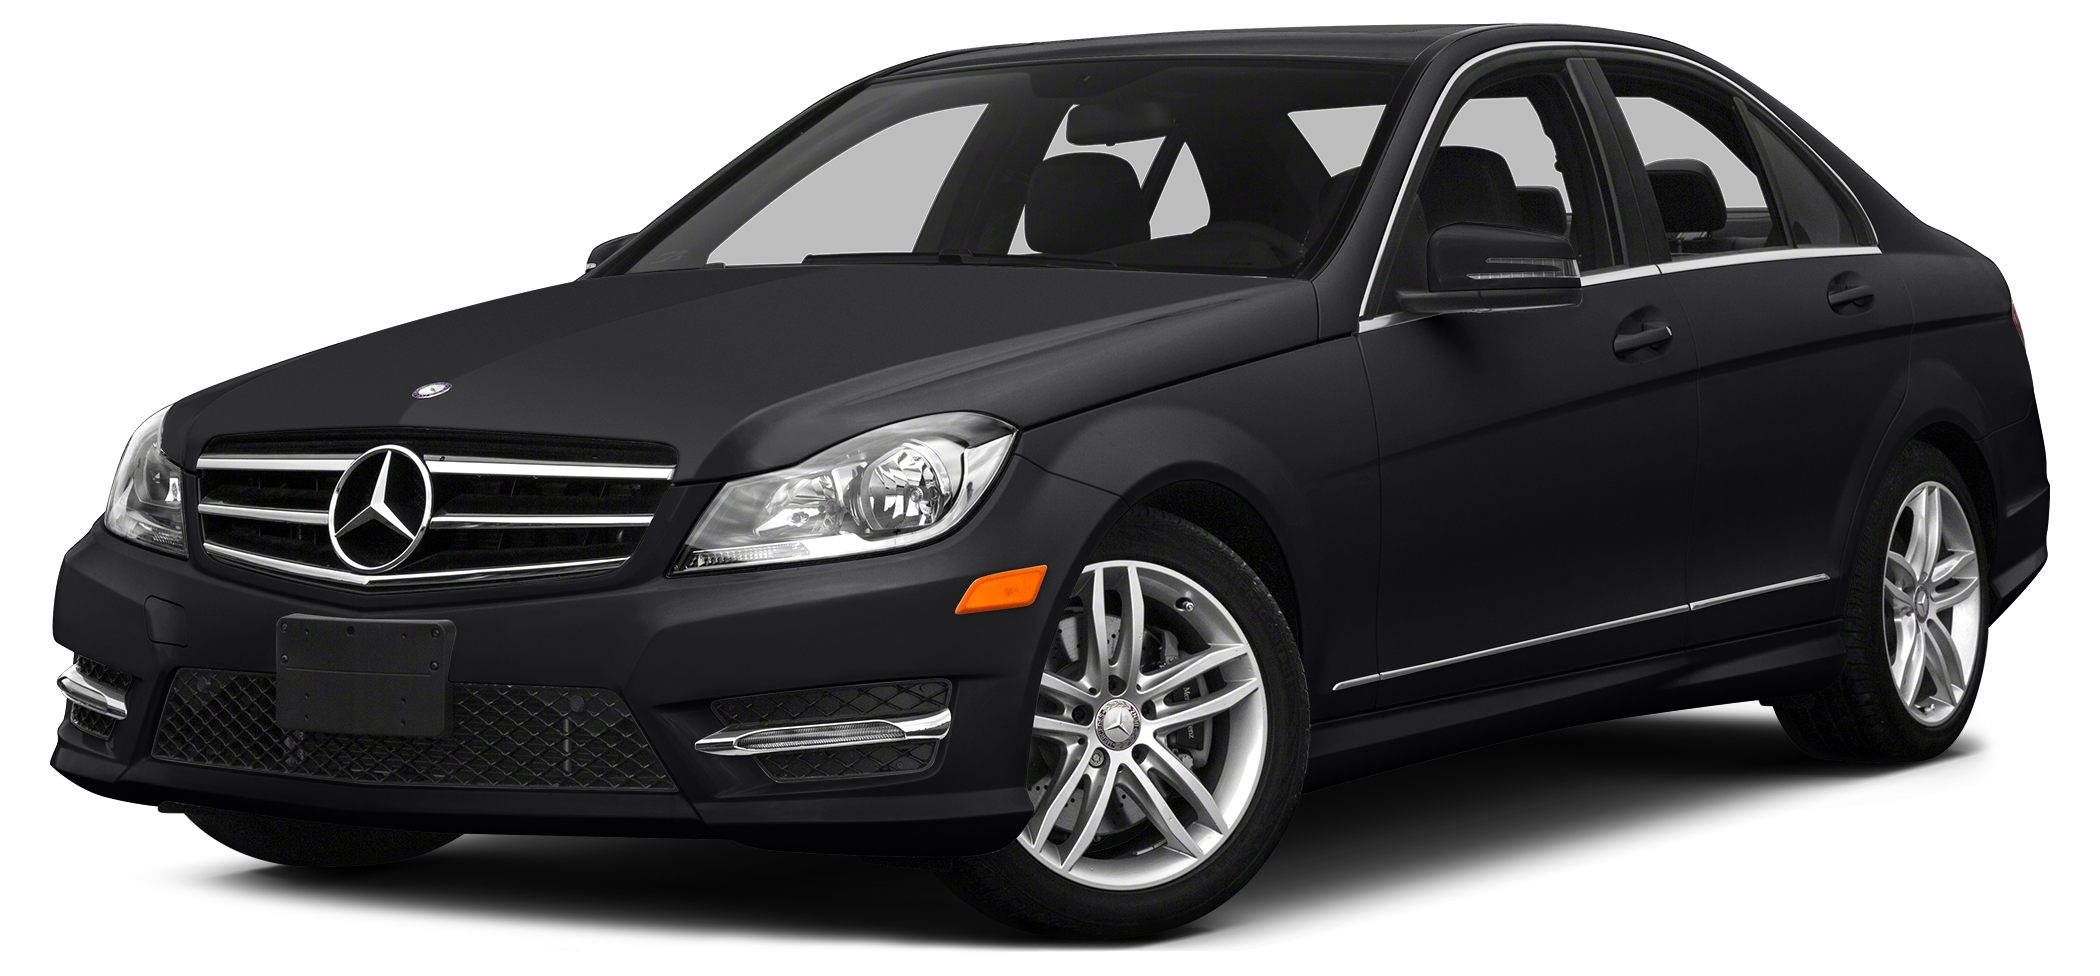 2014 MERCEDES C-Class C300 Vehicle Detailed Recent Oil Change and Passed Dealer Inspection Low